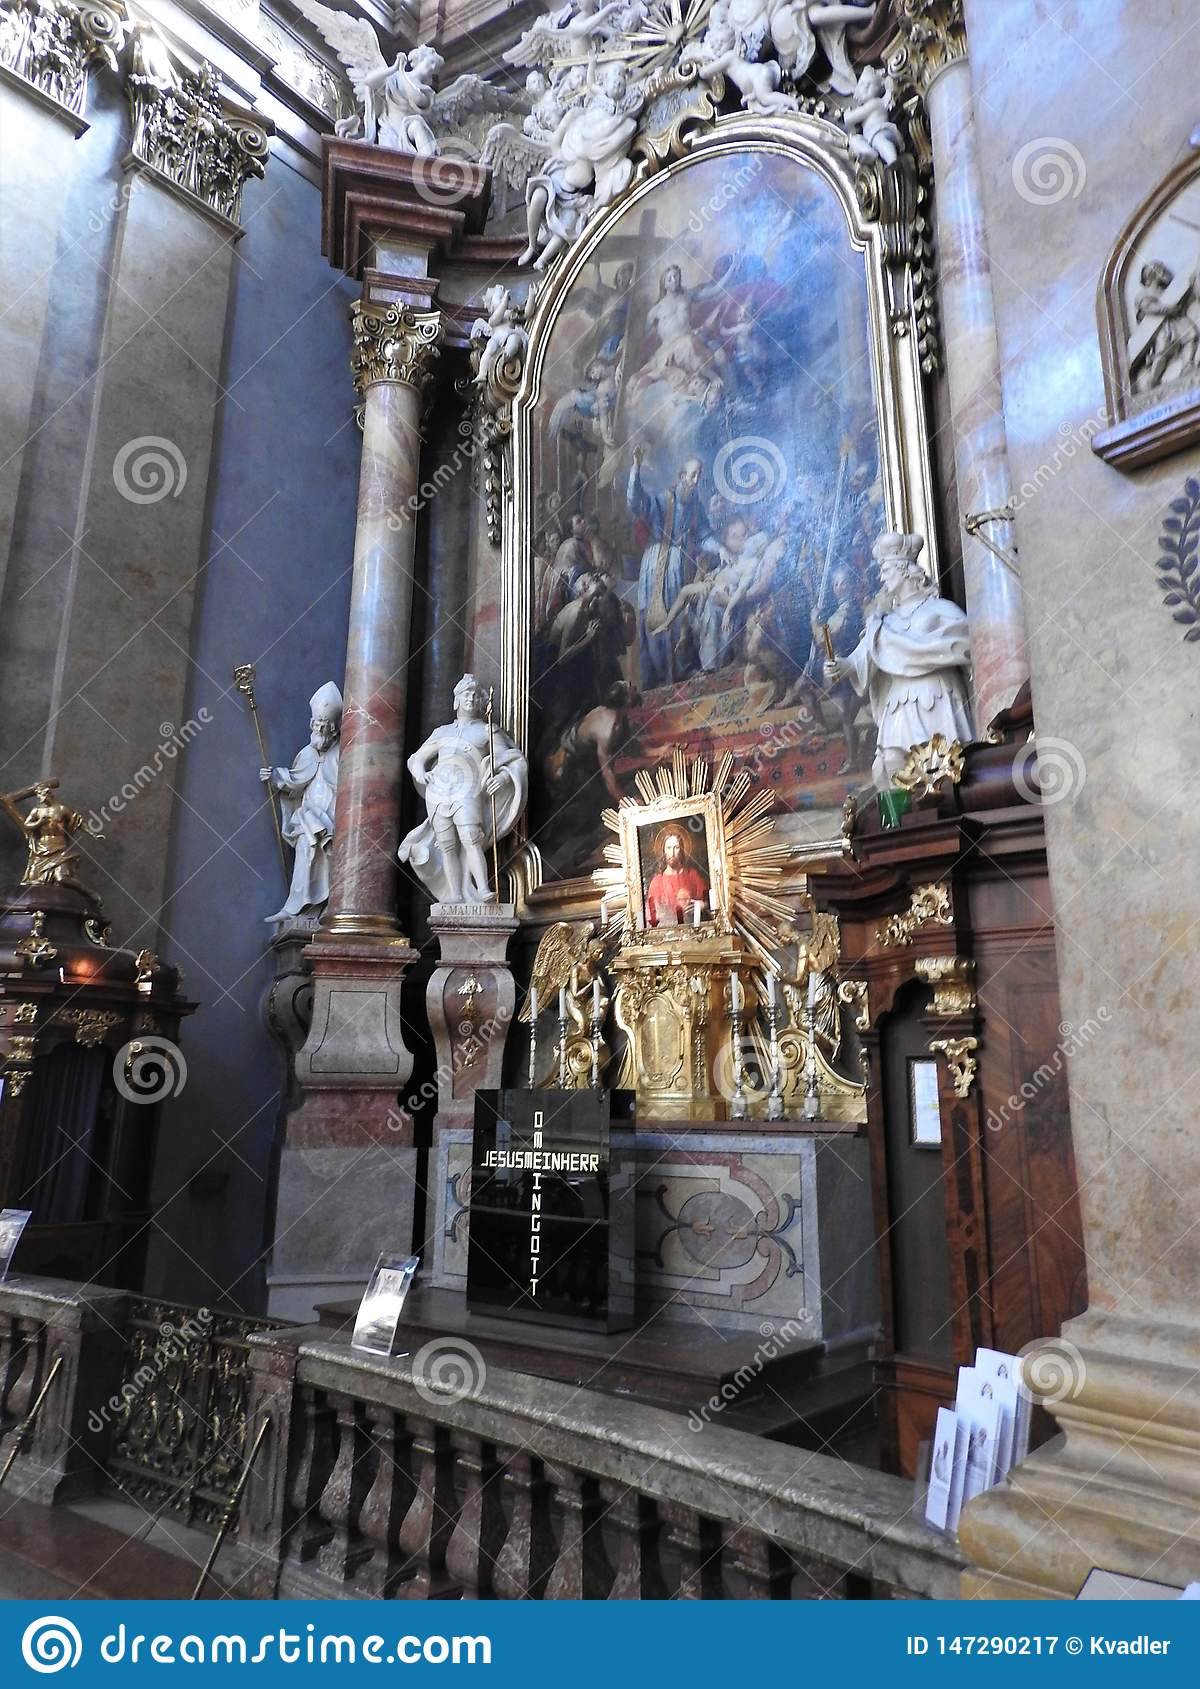 Vienne, Austria-29 07 2018 : int?rieur de St Peter Peterskirche Church, ?glise paroissiale catholique baroque ? Vienne, Autriche